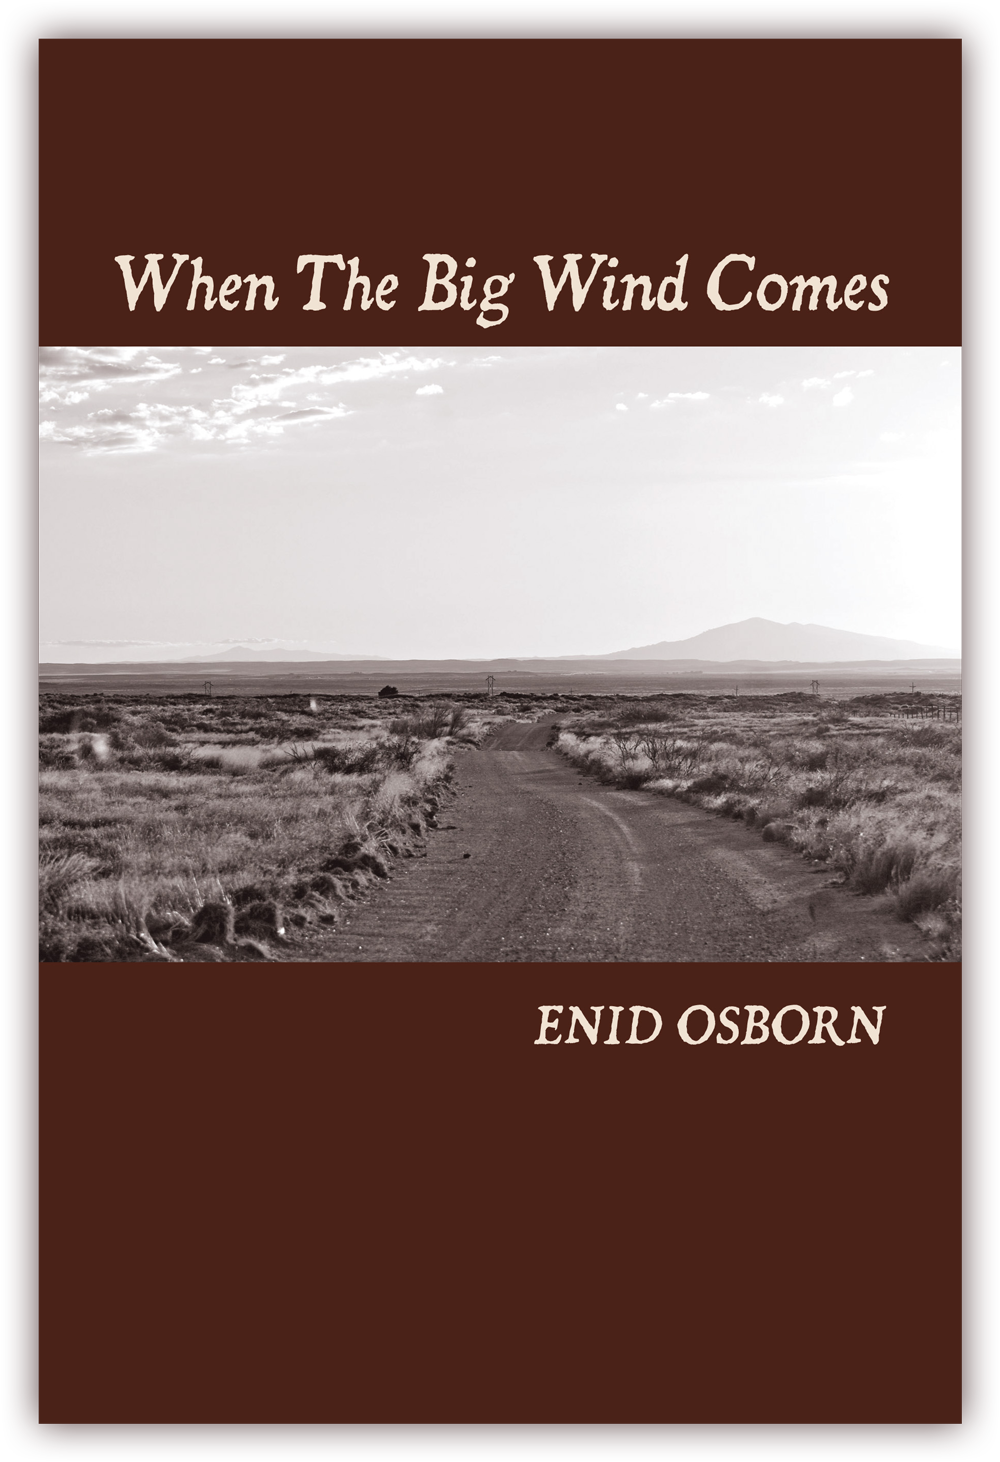 When The Big Wind Comes (front cover) Poems by Enid Osborn CLICK IMAGE TO ENLARGE